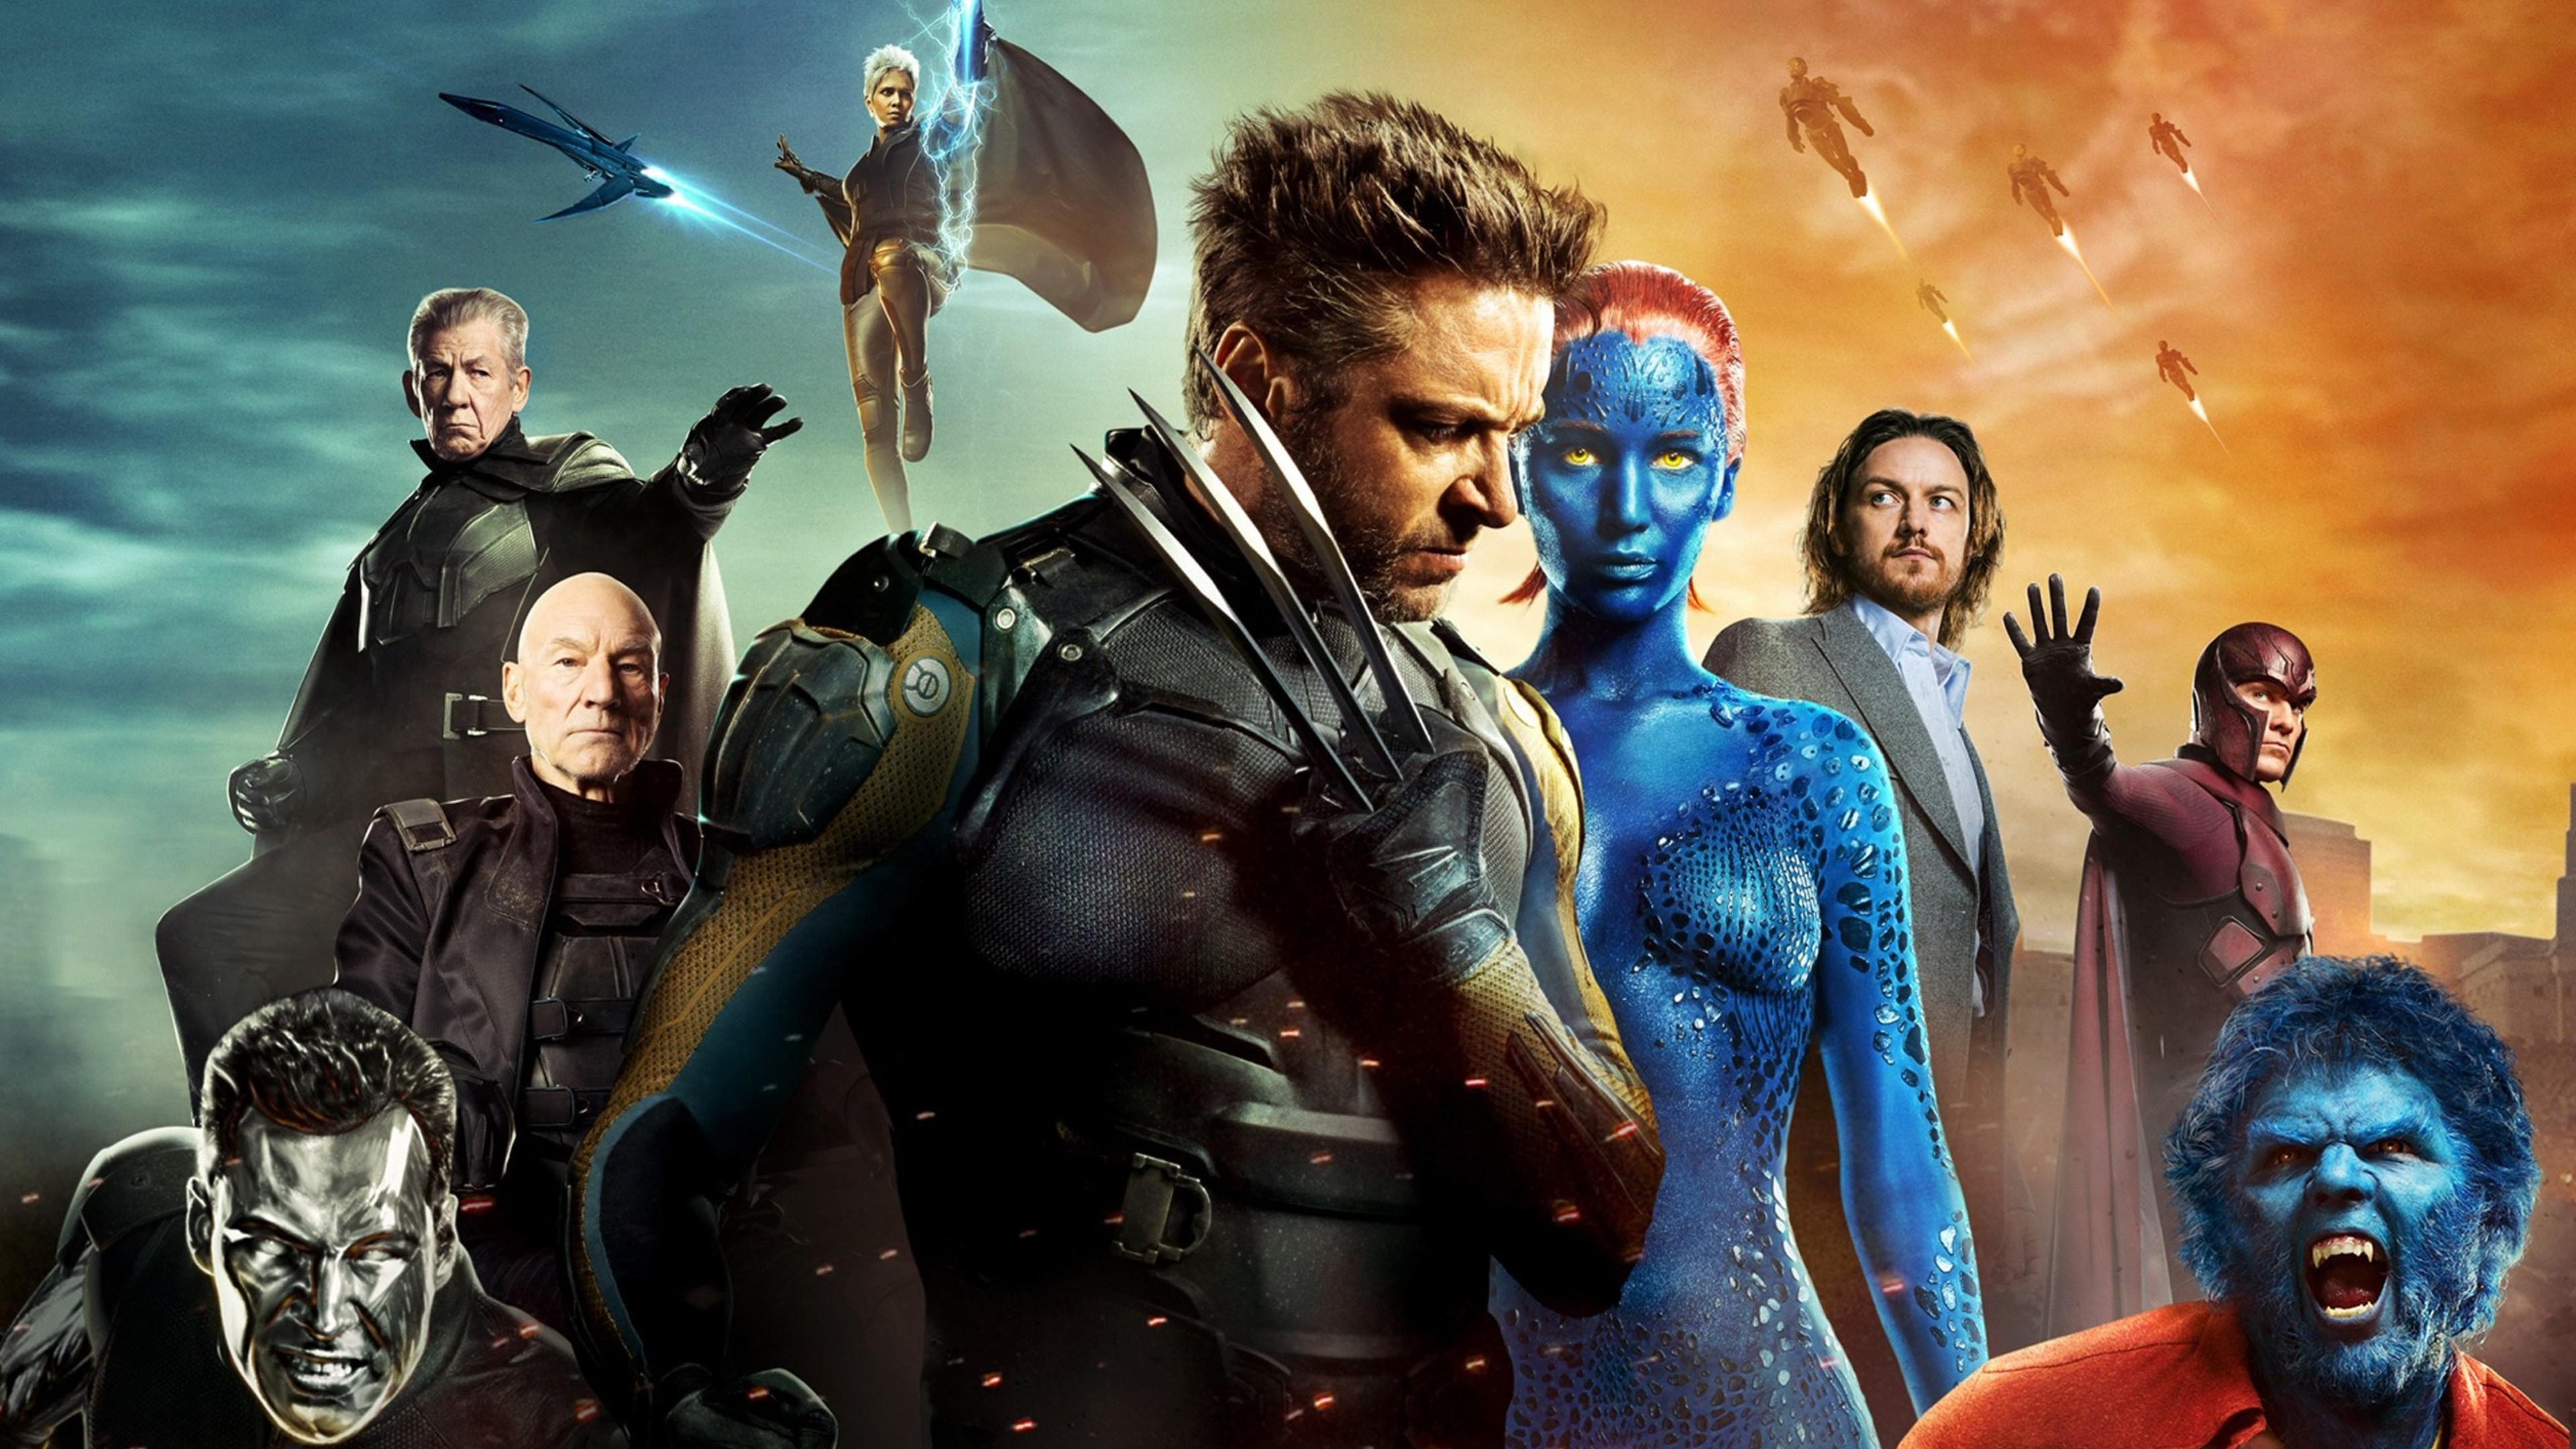 1440x900 X Men Days Of Future Past Poster 1440x900 Resolution Hd